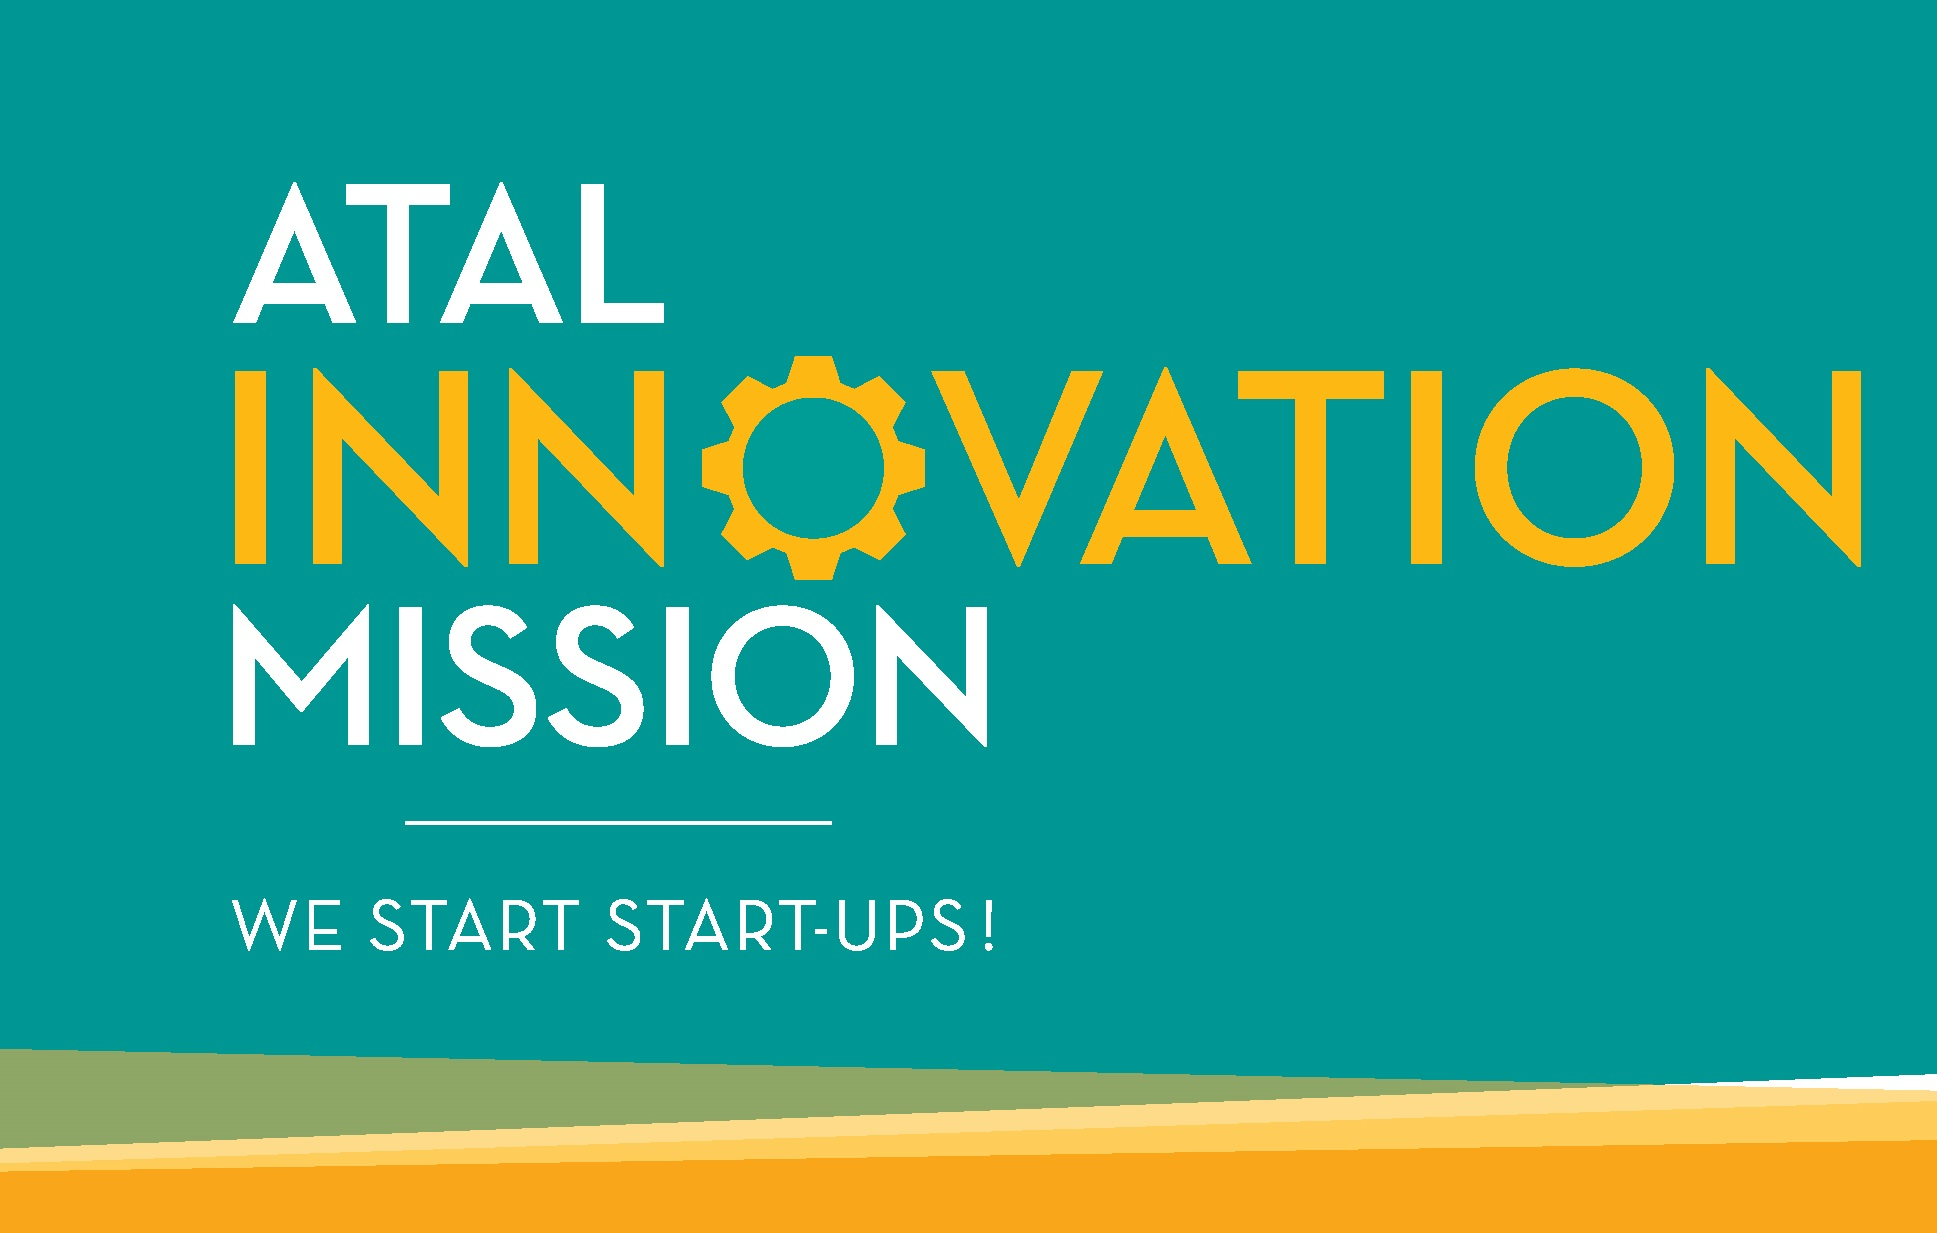 atal-innovation-mission-niti-aayog